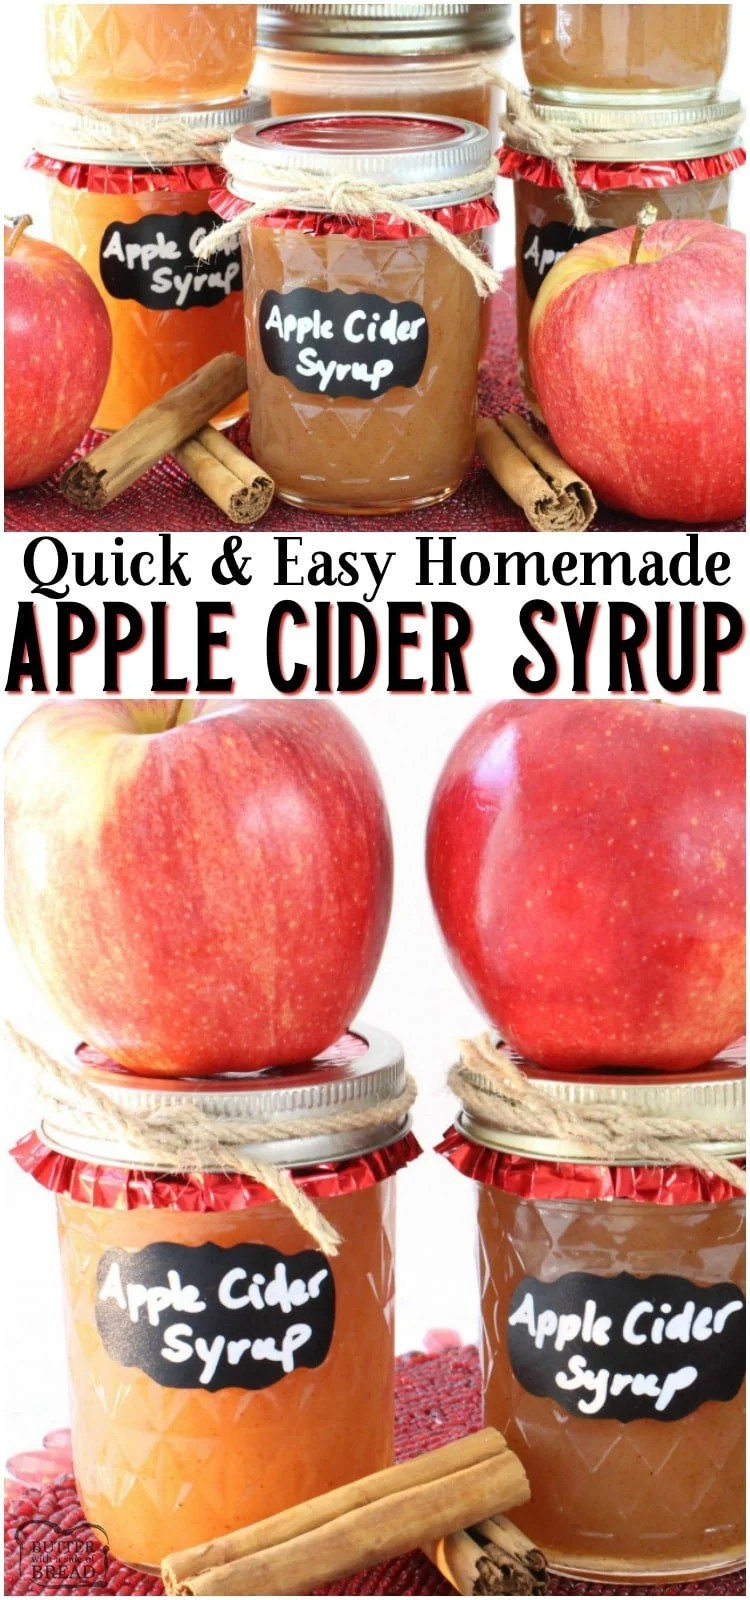 Easy Apple Cider Syrup made with simple ingredients including apple cider & pumpkin pie spice! This delightful homemade syrup recipe is easy to make and tastes wonderful. Perfect flavors for Fall breakfasts! #apples #applecider #syrup #homemade #breakfast #applecinnamon #easyrecipe from BUTTER WITH A SIDE OF BREAD